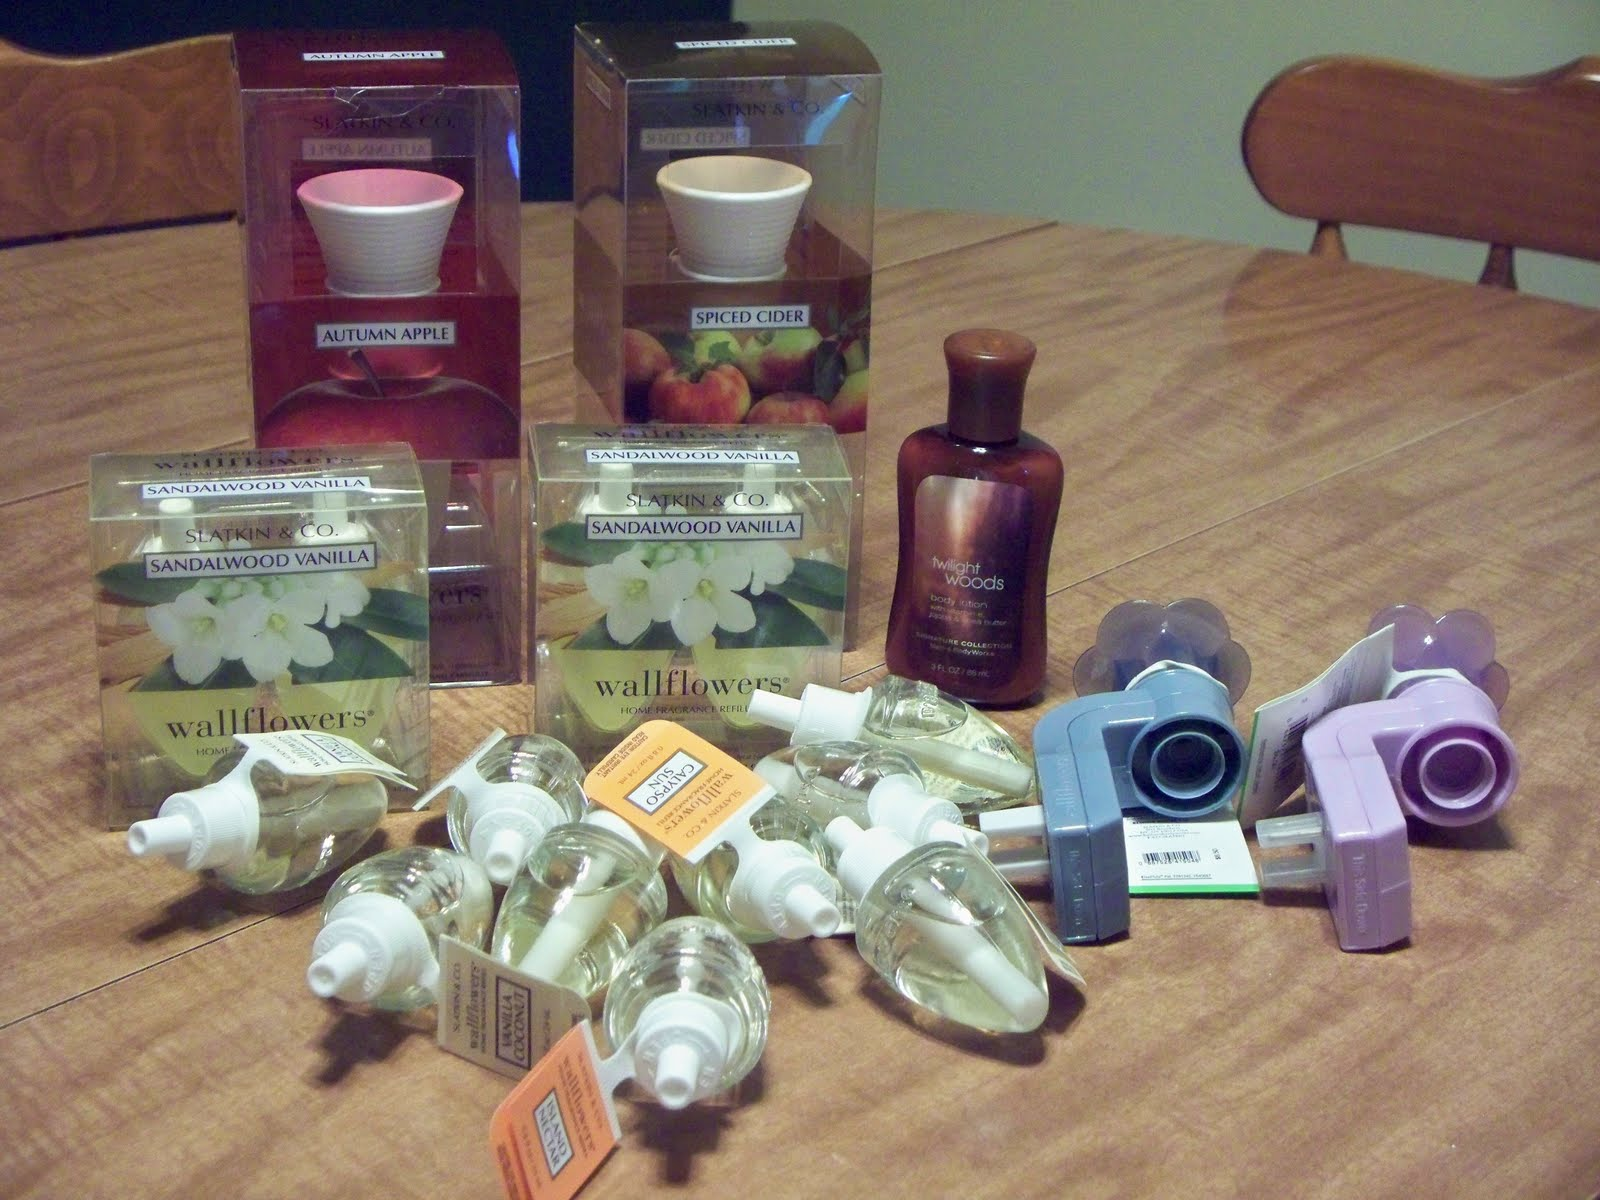 My Friday Finds: Bath and Body